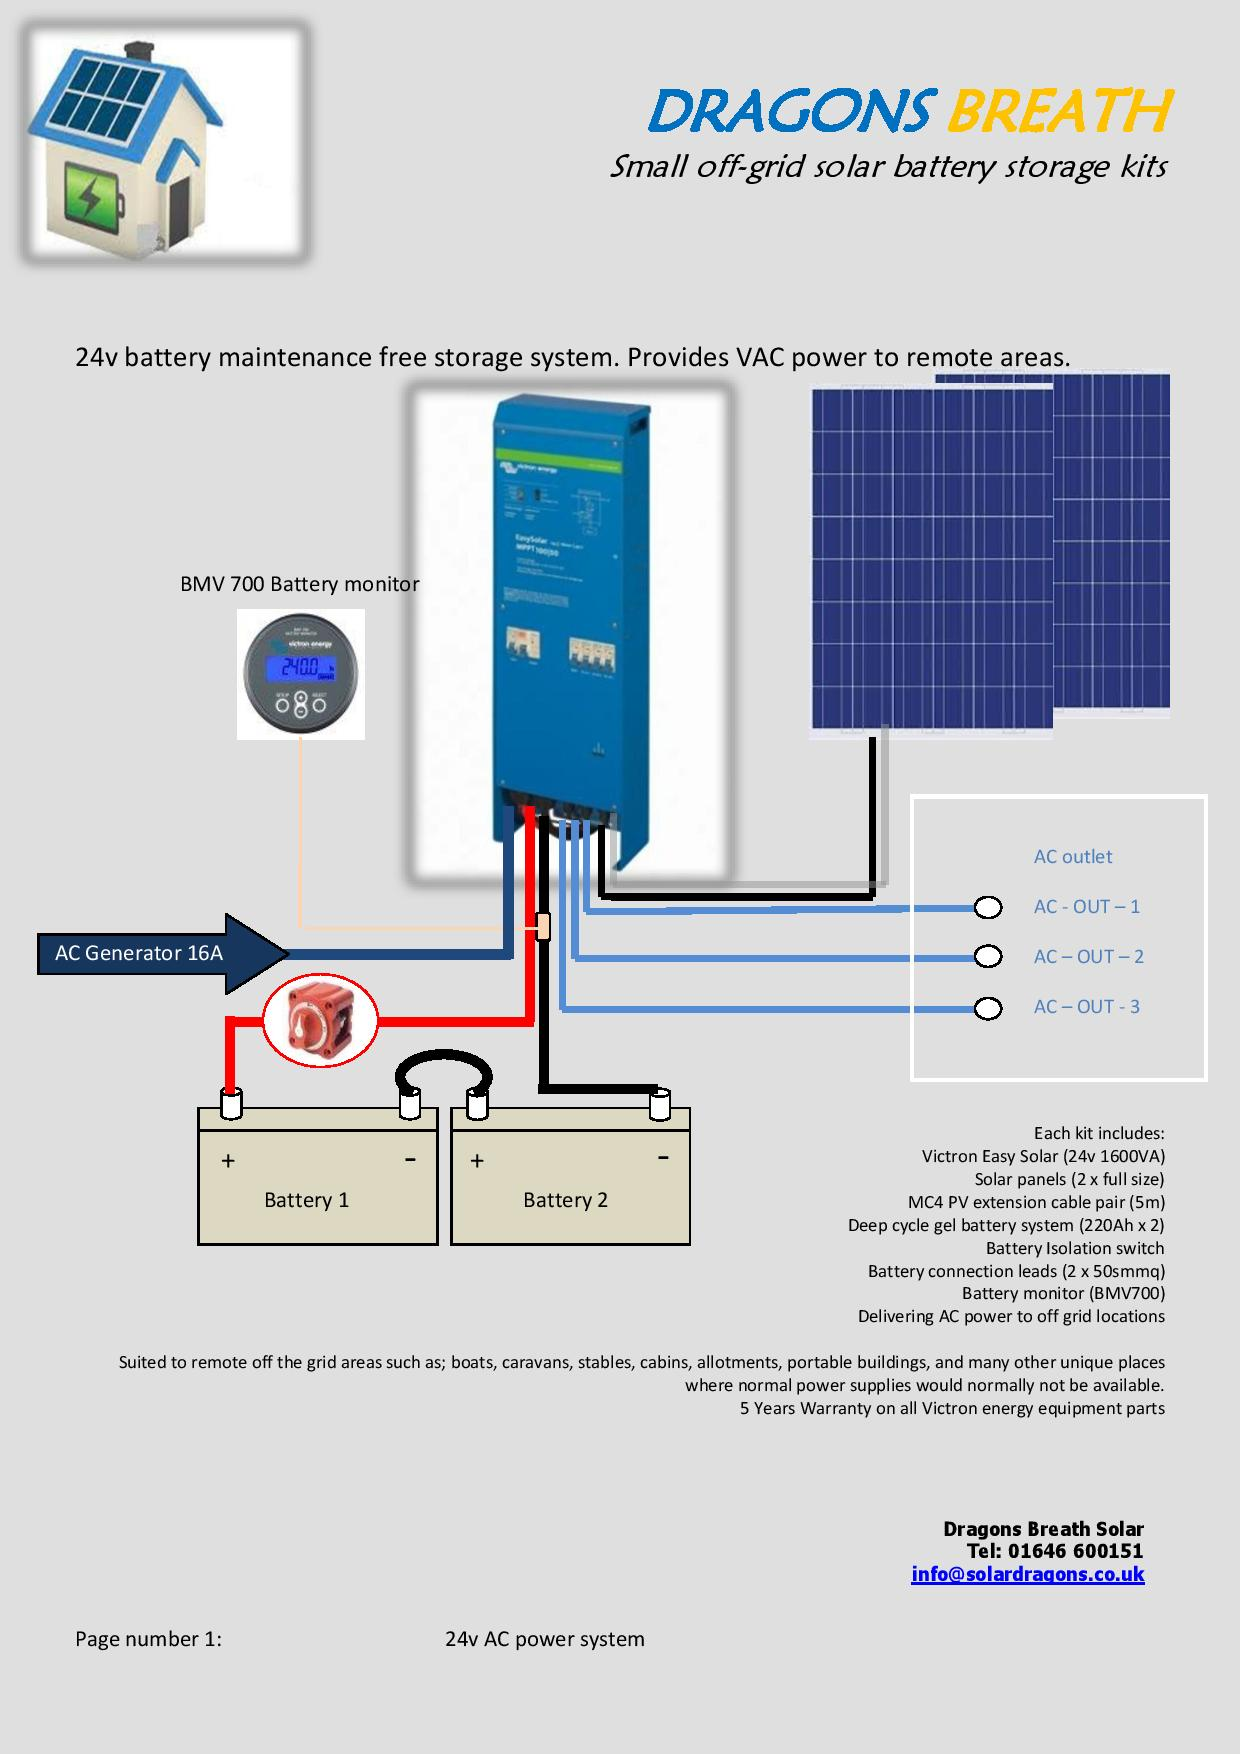 Easy Solar off the grid complete kits ready to run VAC 230v power in remote locations.